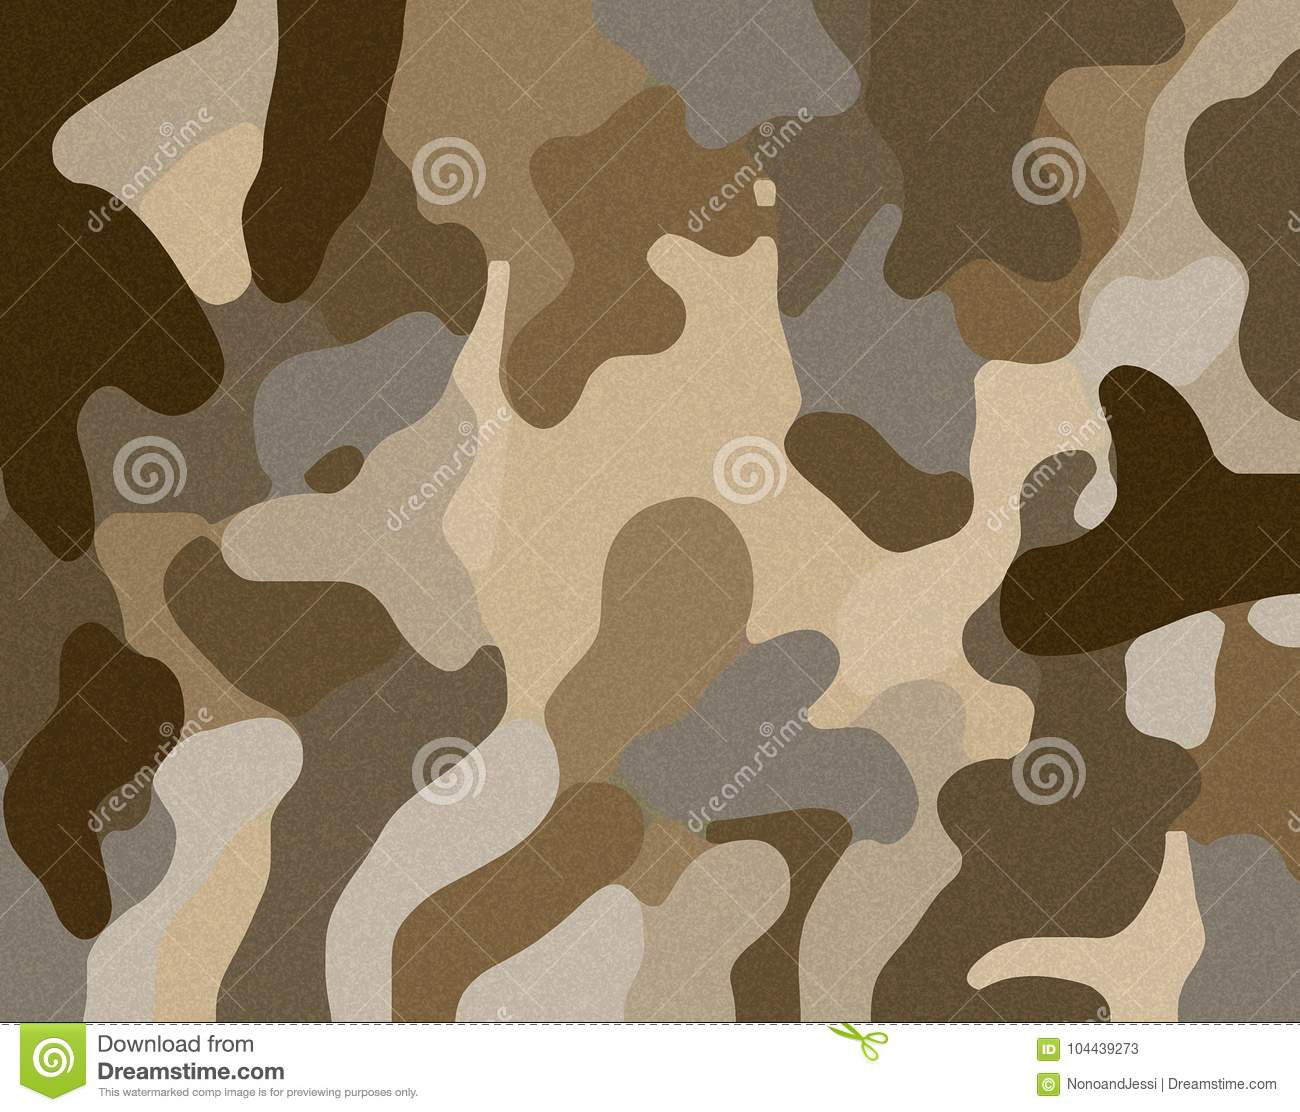 Desert camouflage sand illustration